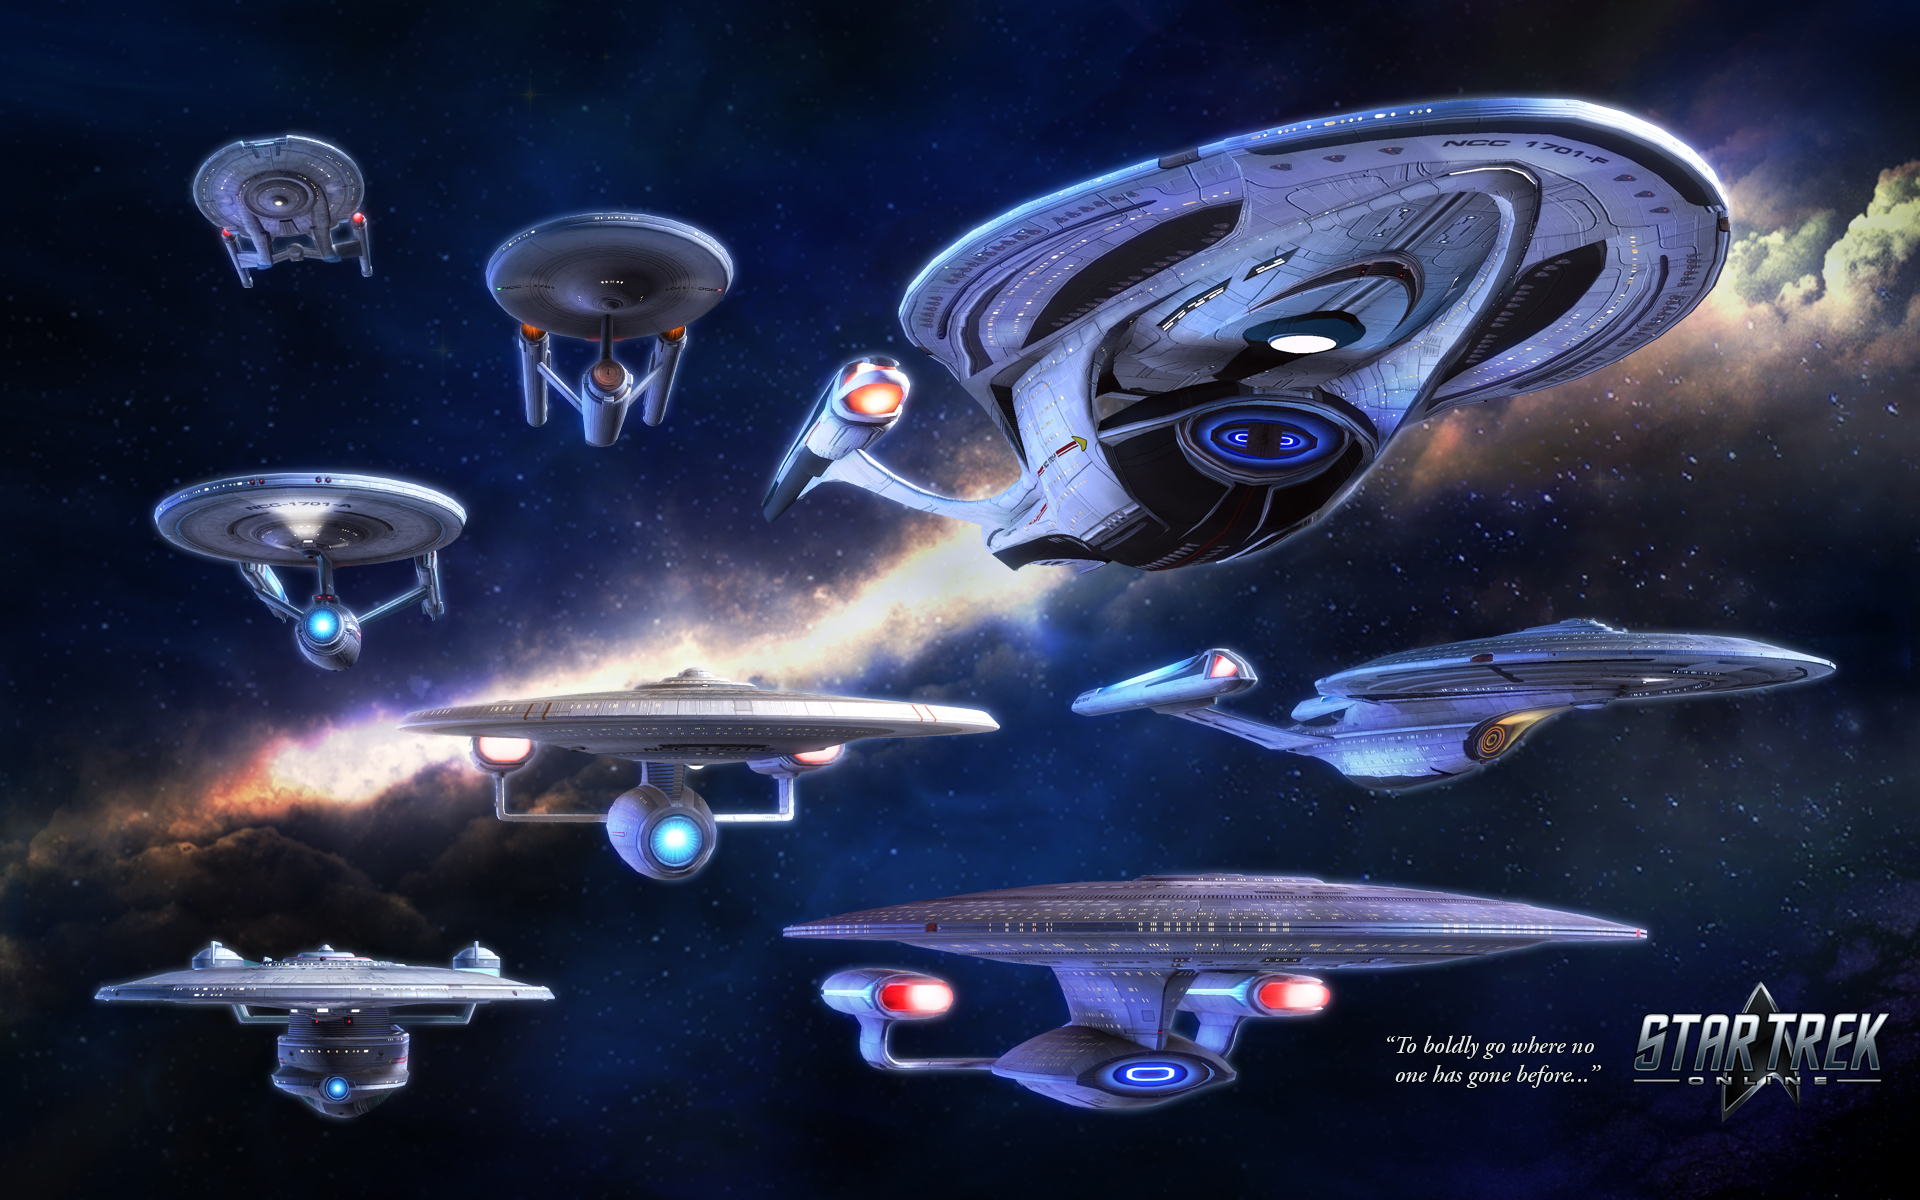 Star Trek Ships of the Line 2019 Wall Calendar CBS